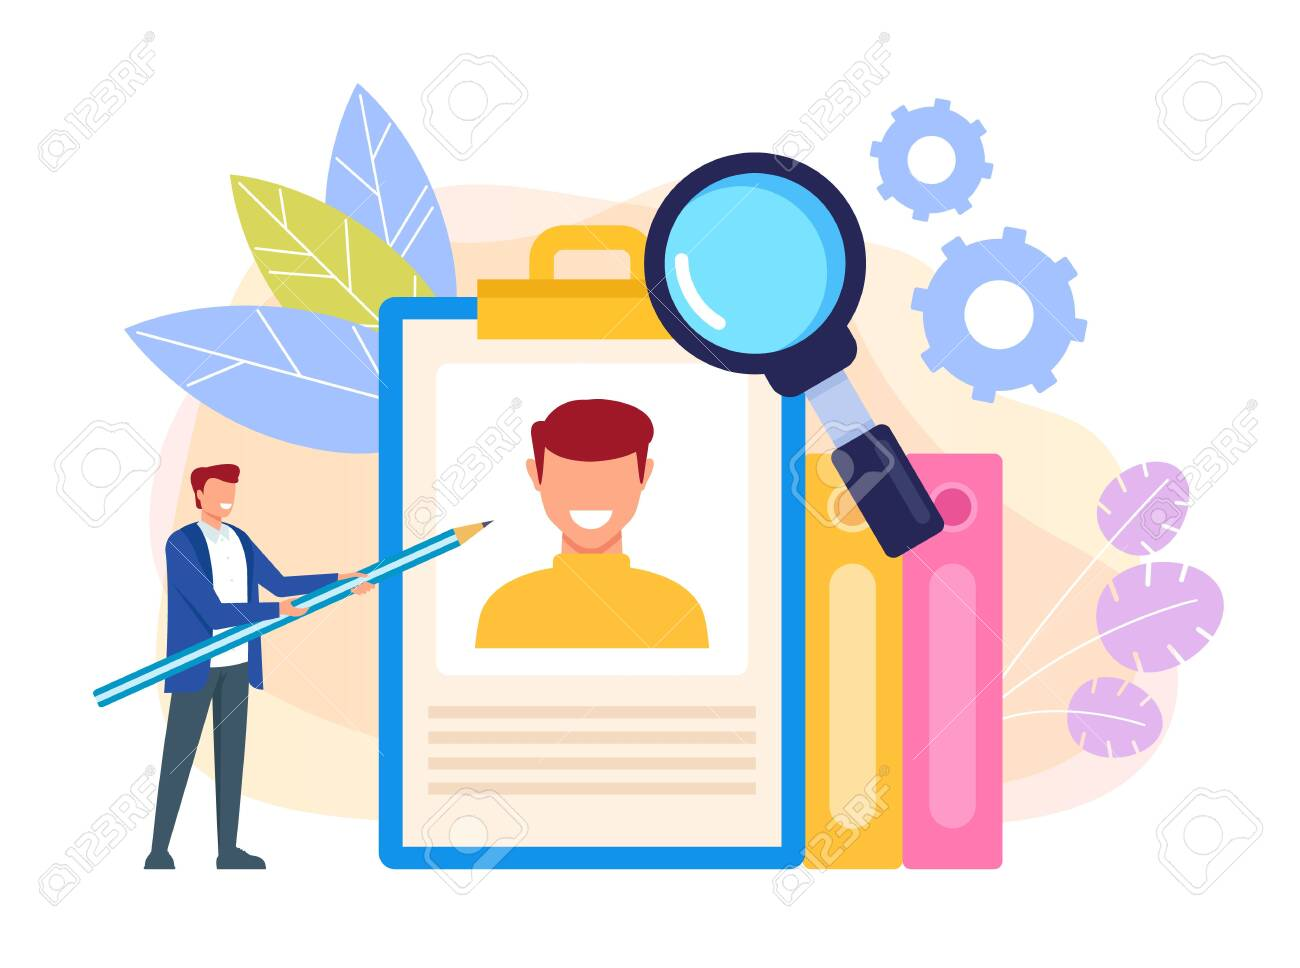 Human Resources Head Hunting Job Searching Concept Vector Flat Royalty Free Cliparts Vectors And Stock Illustration Image 127386894